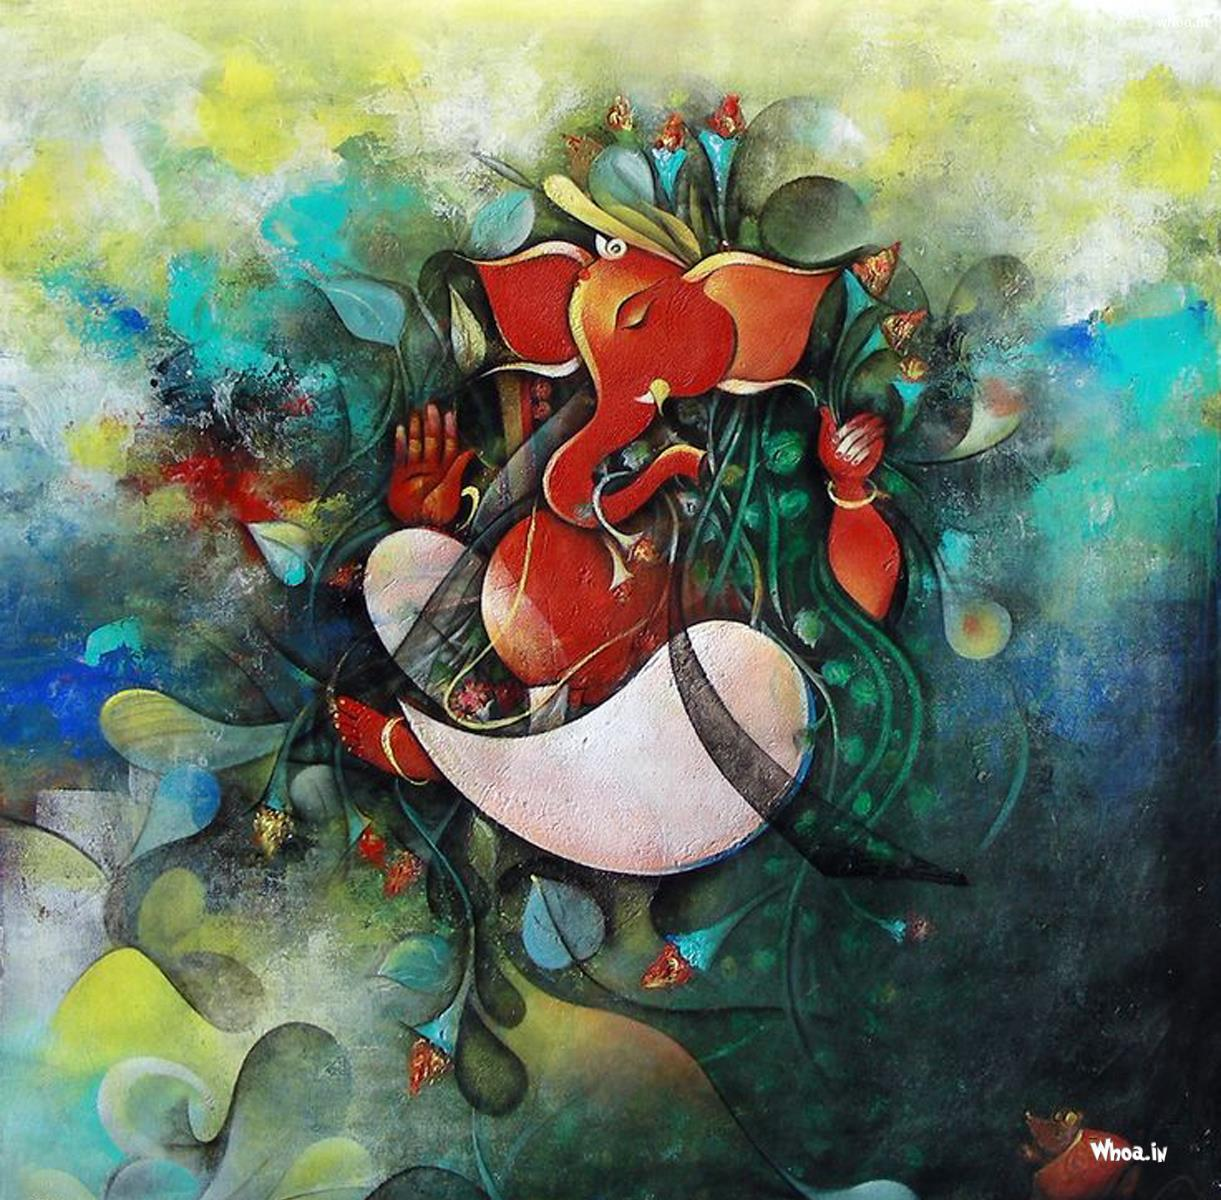 Lord ganesha multi color painting hd image - Lord Ganesha Multi Color Painting Hd Image Share This Page Wow 706 Download